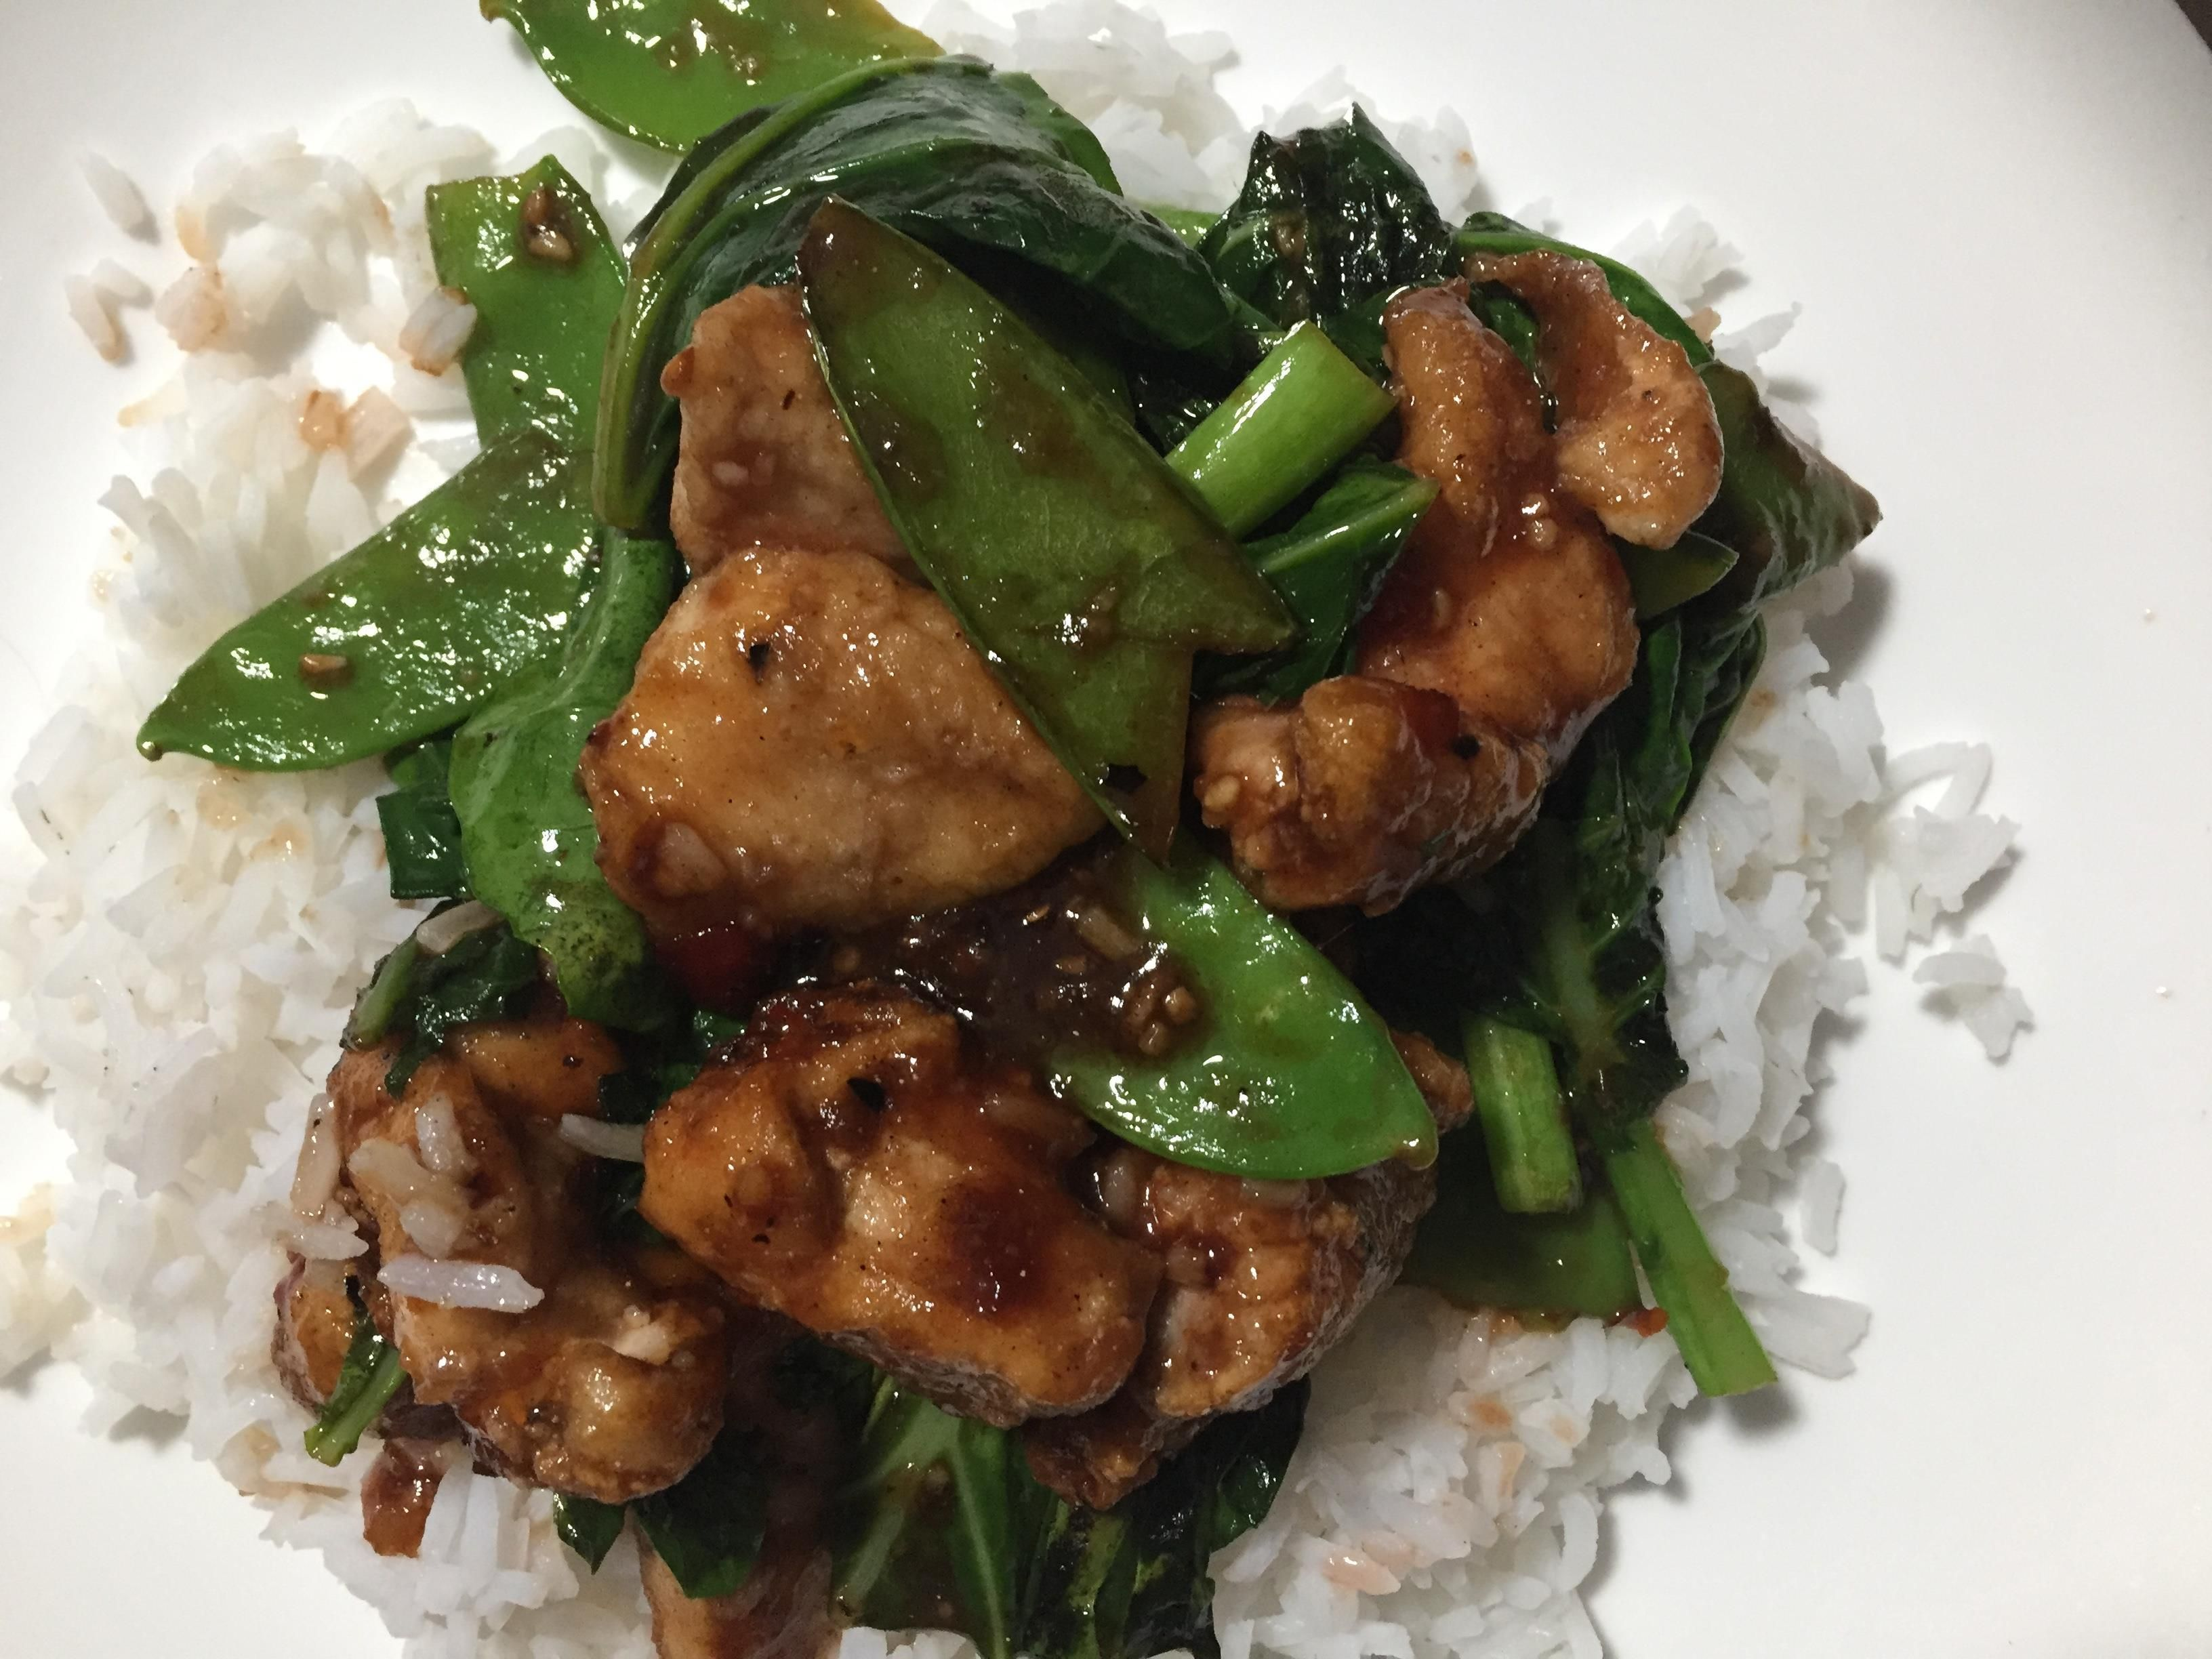 Crispy Spiced Chicken And Plum Sauce Stir Fry Recipe Chicken Spices Plum Sauce Chicken